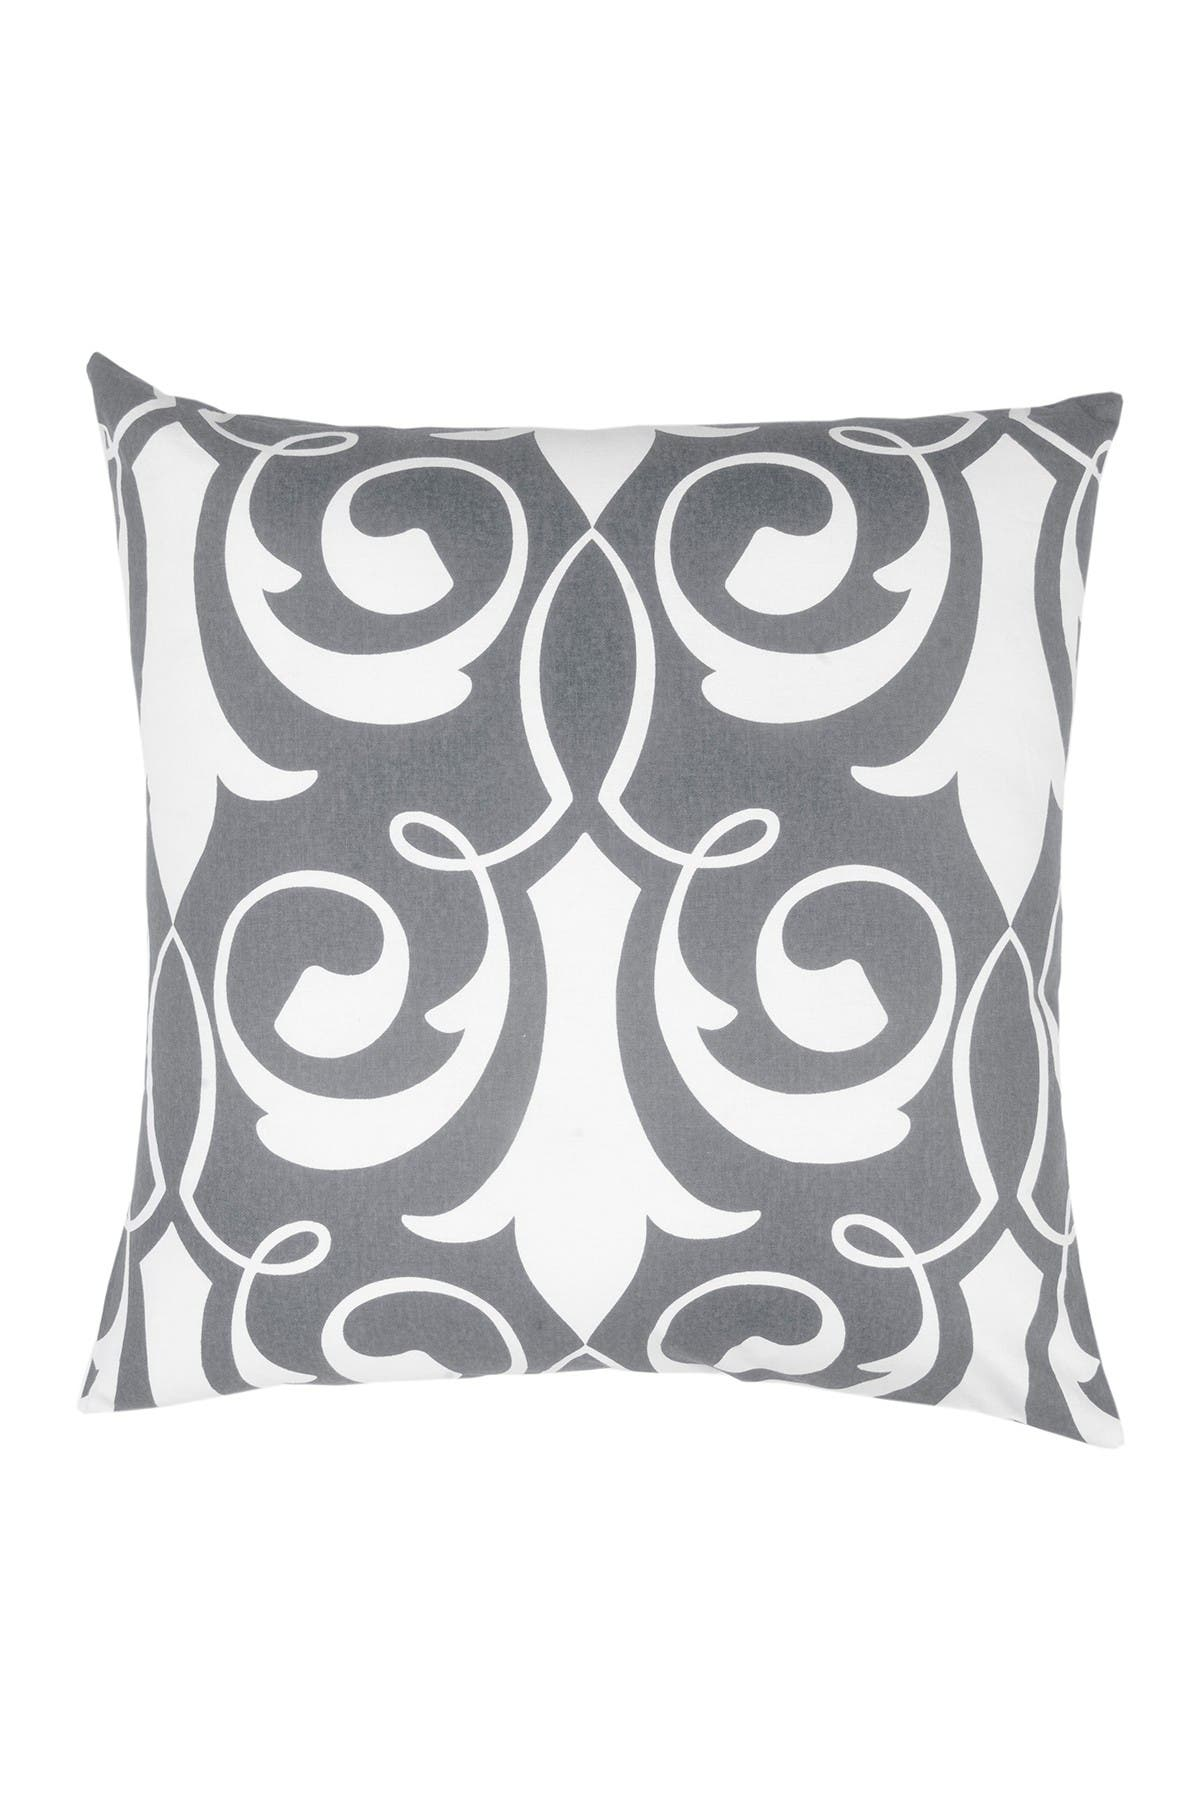 """Image of DIVINE HOME Gray Damask Throw Pillow - 20""""x20"""""""